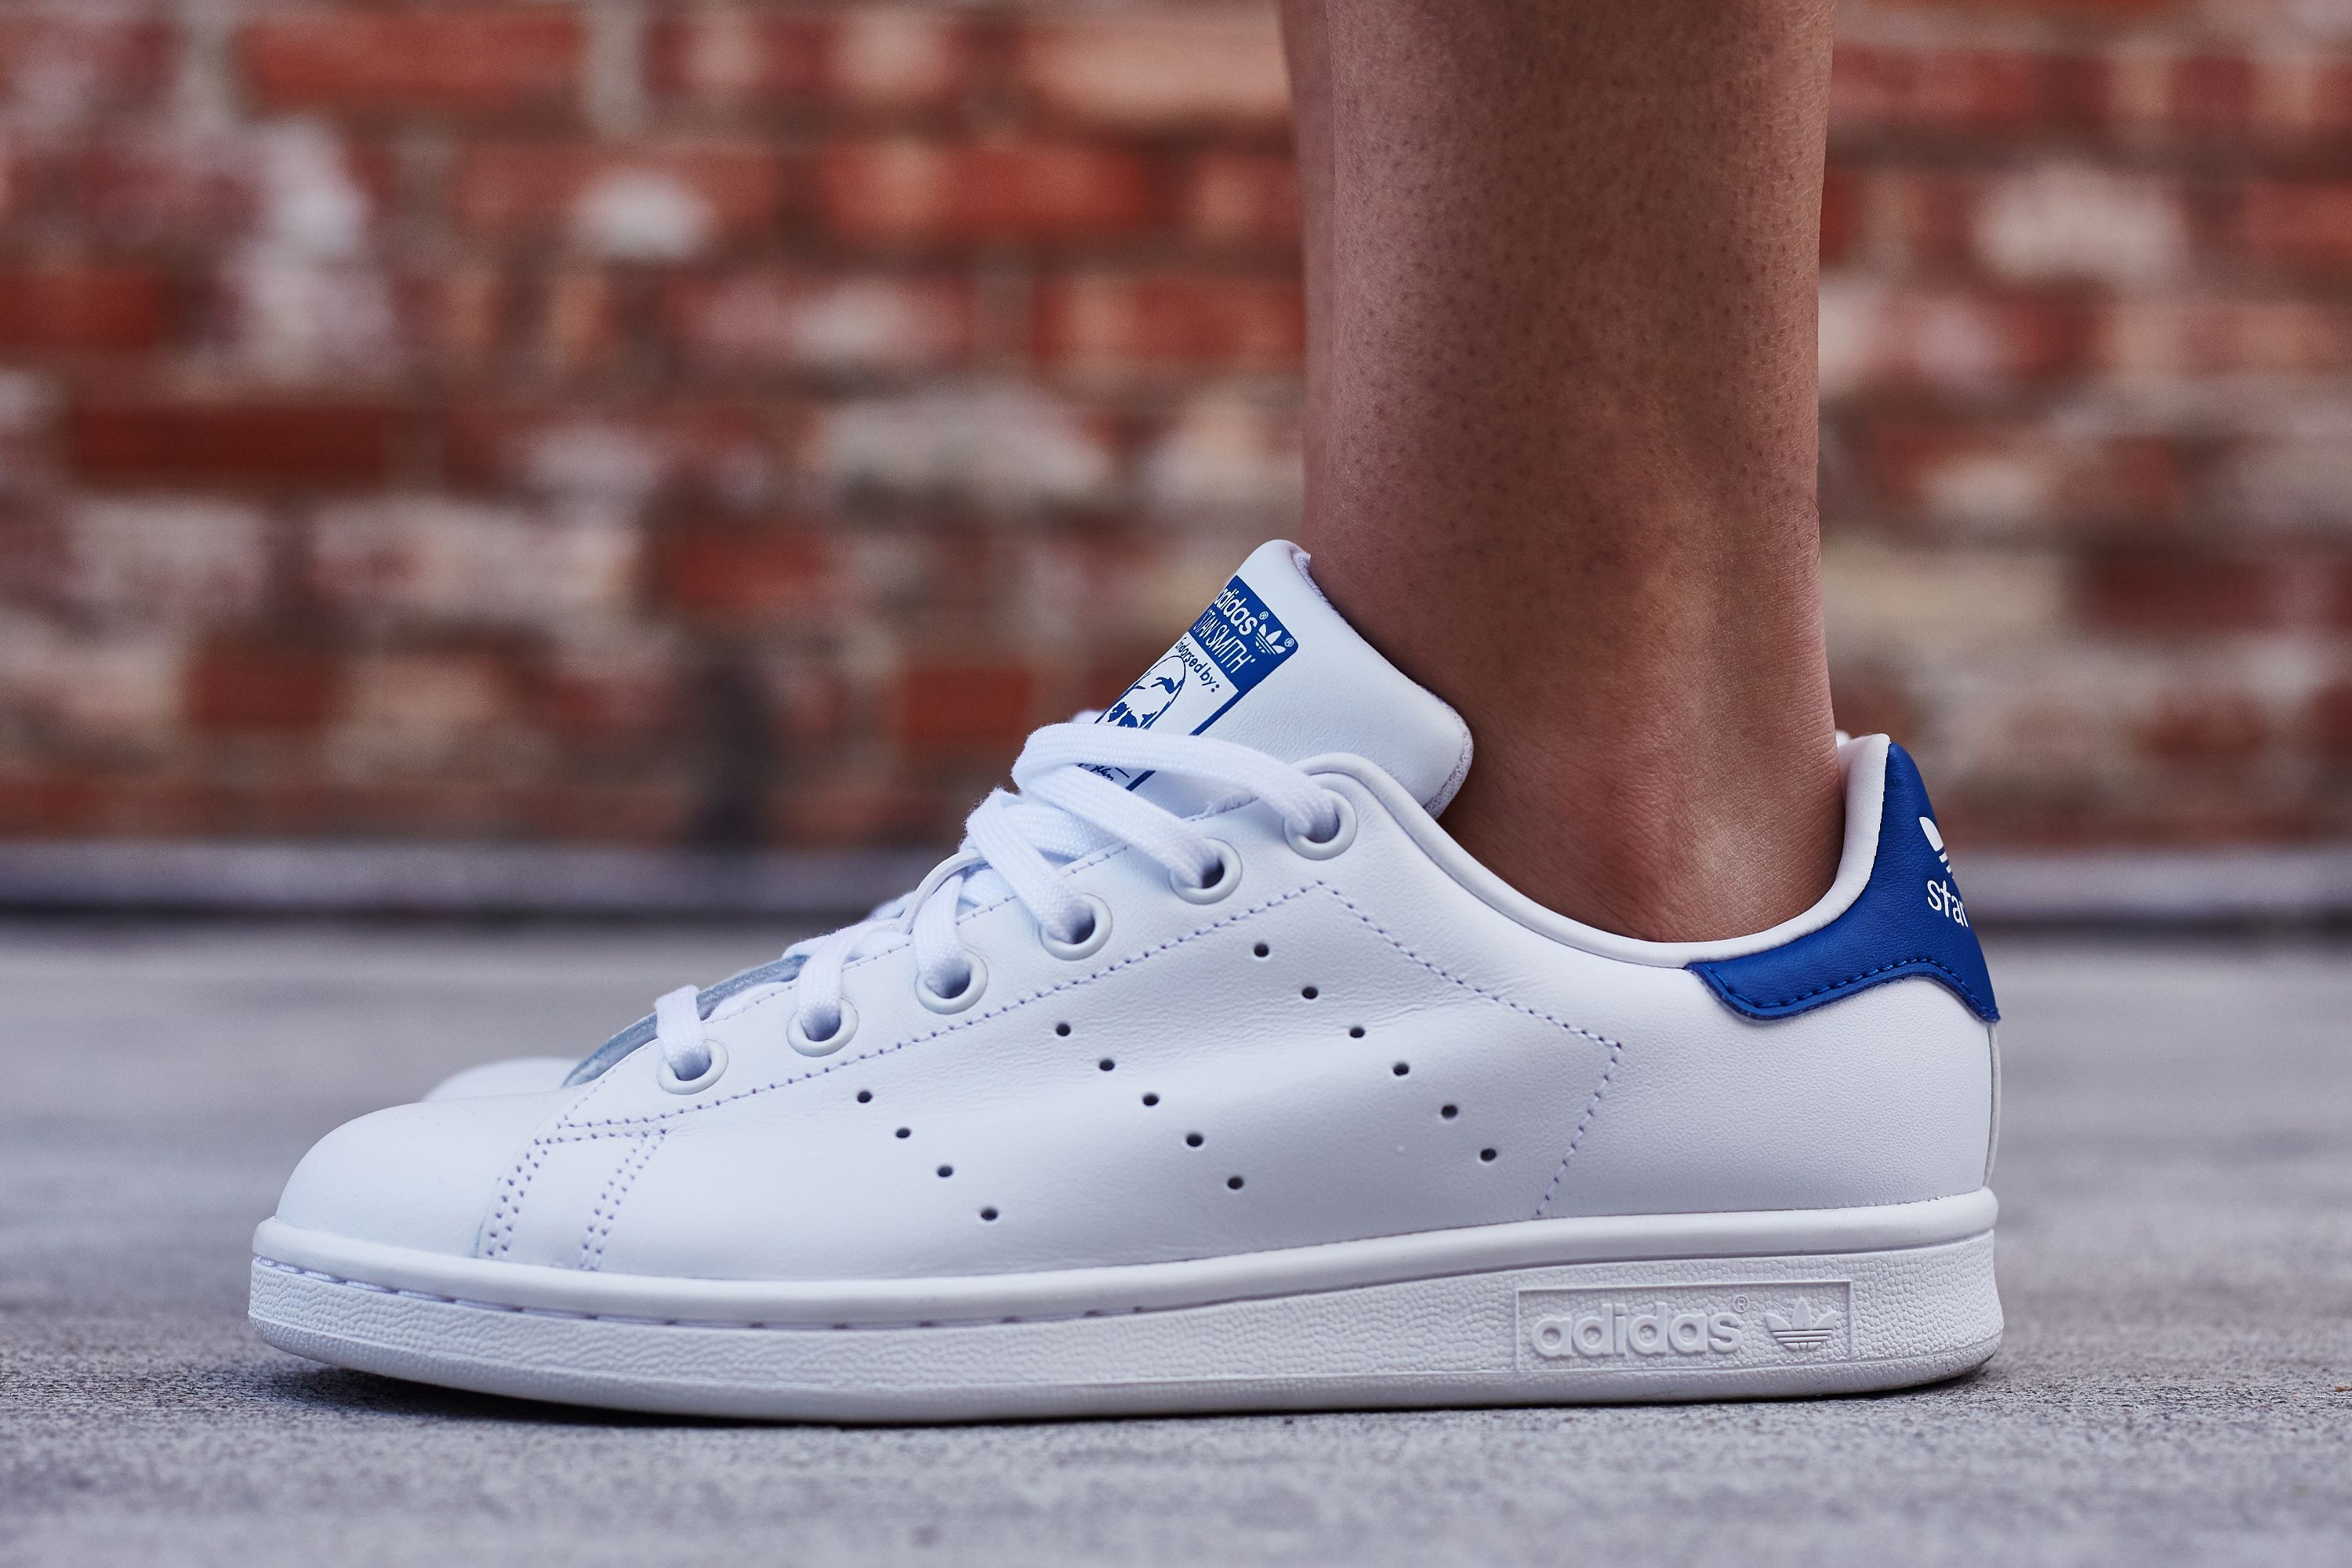 adidas Stan Smith White/Royal On-Foot Look